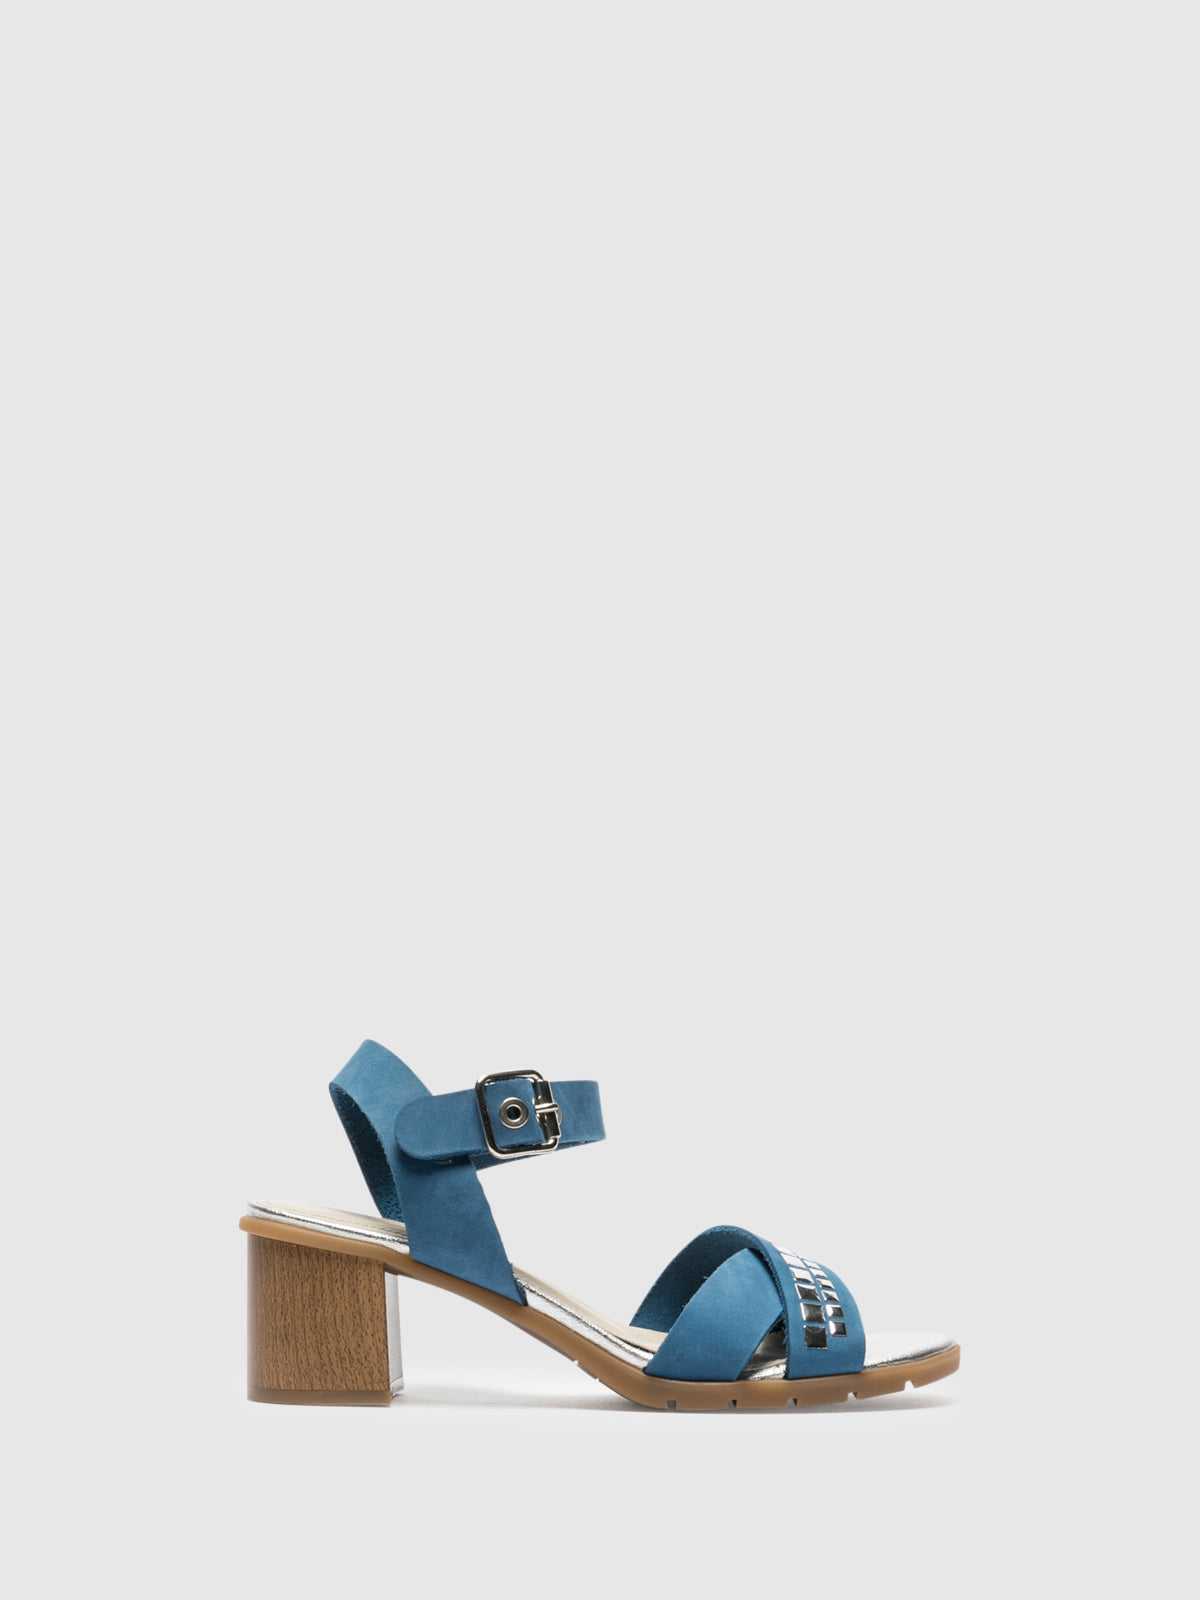 The Flexx Sandalen mit Fersenriemen in Blau